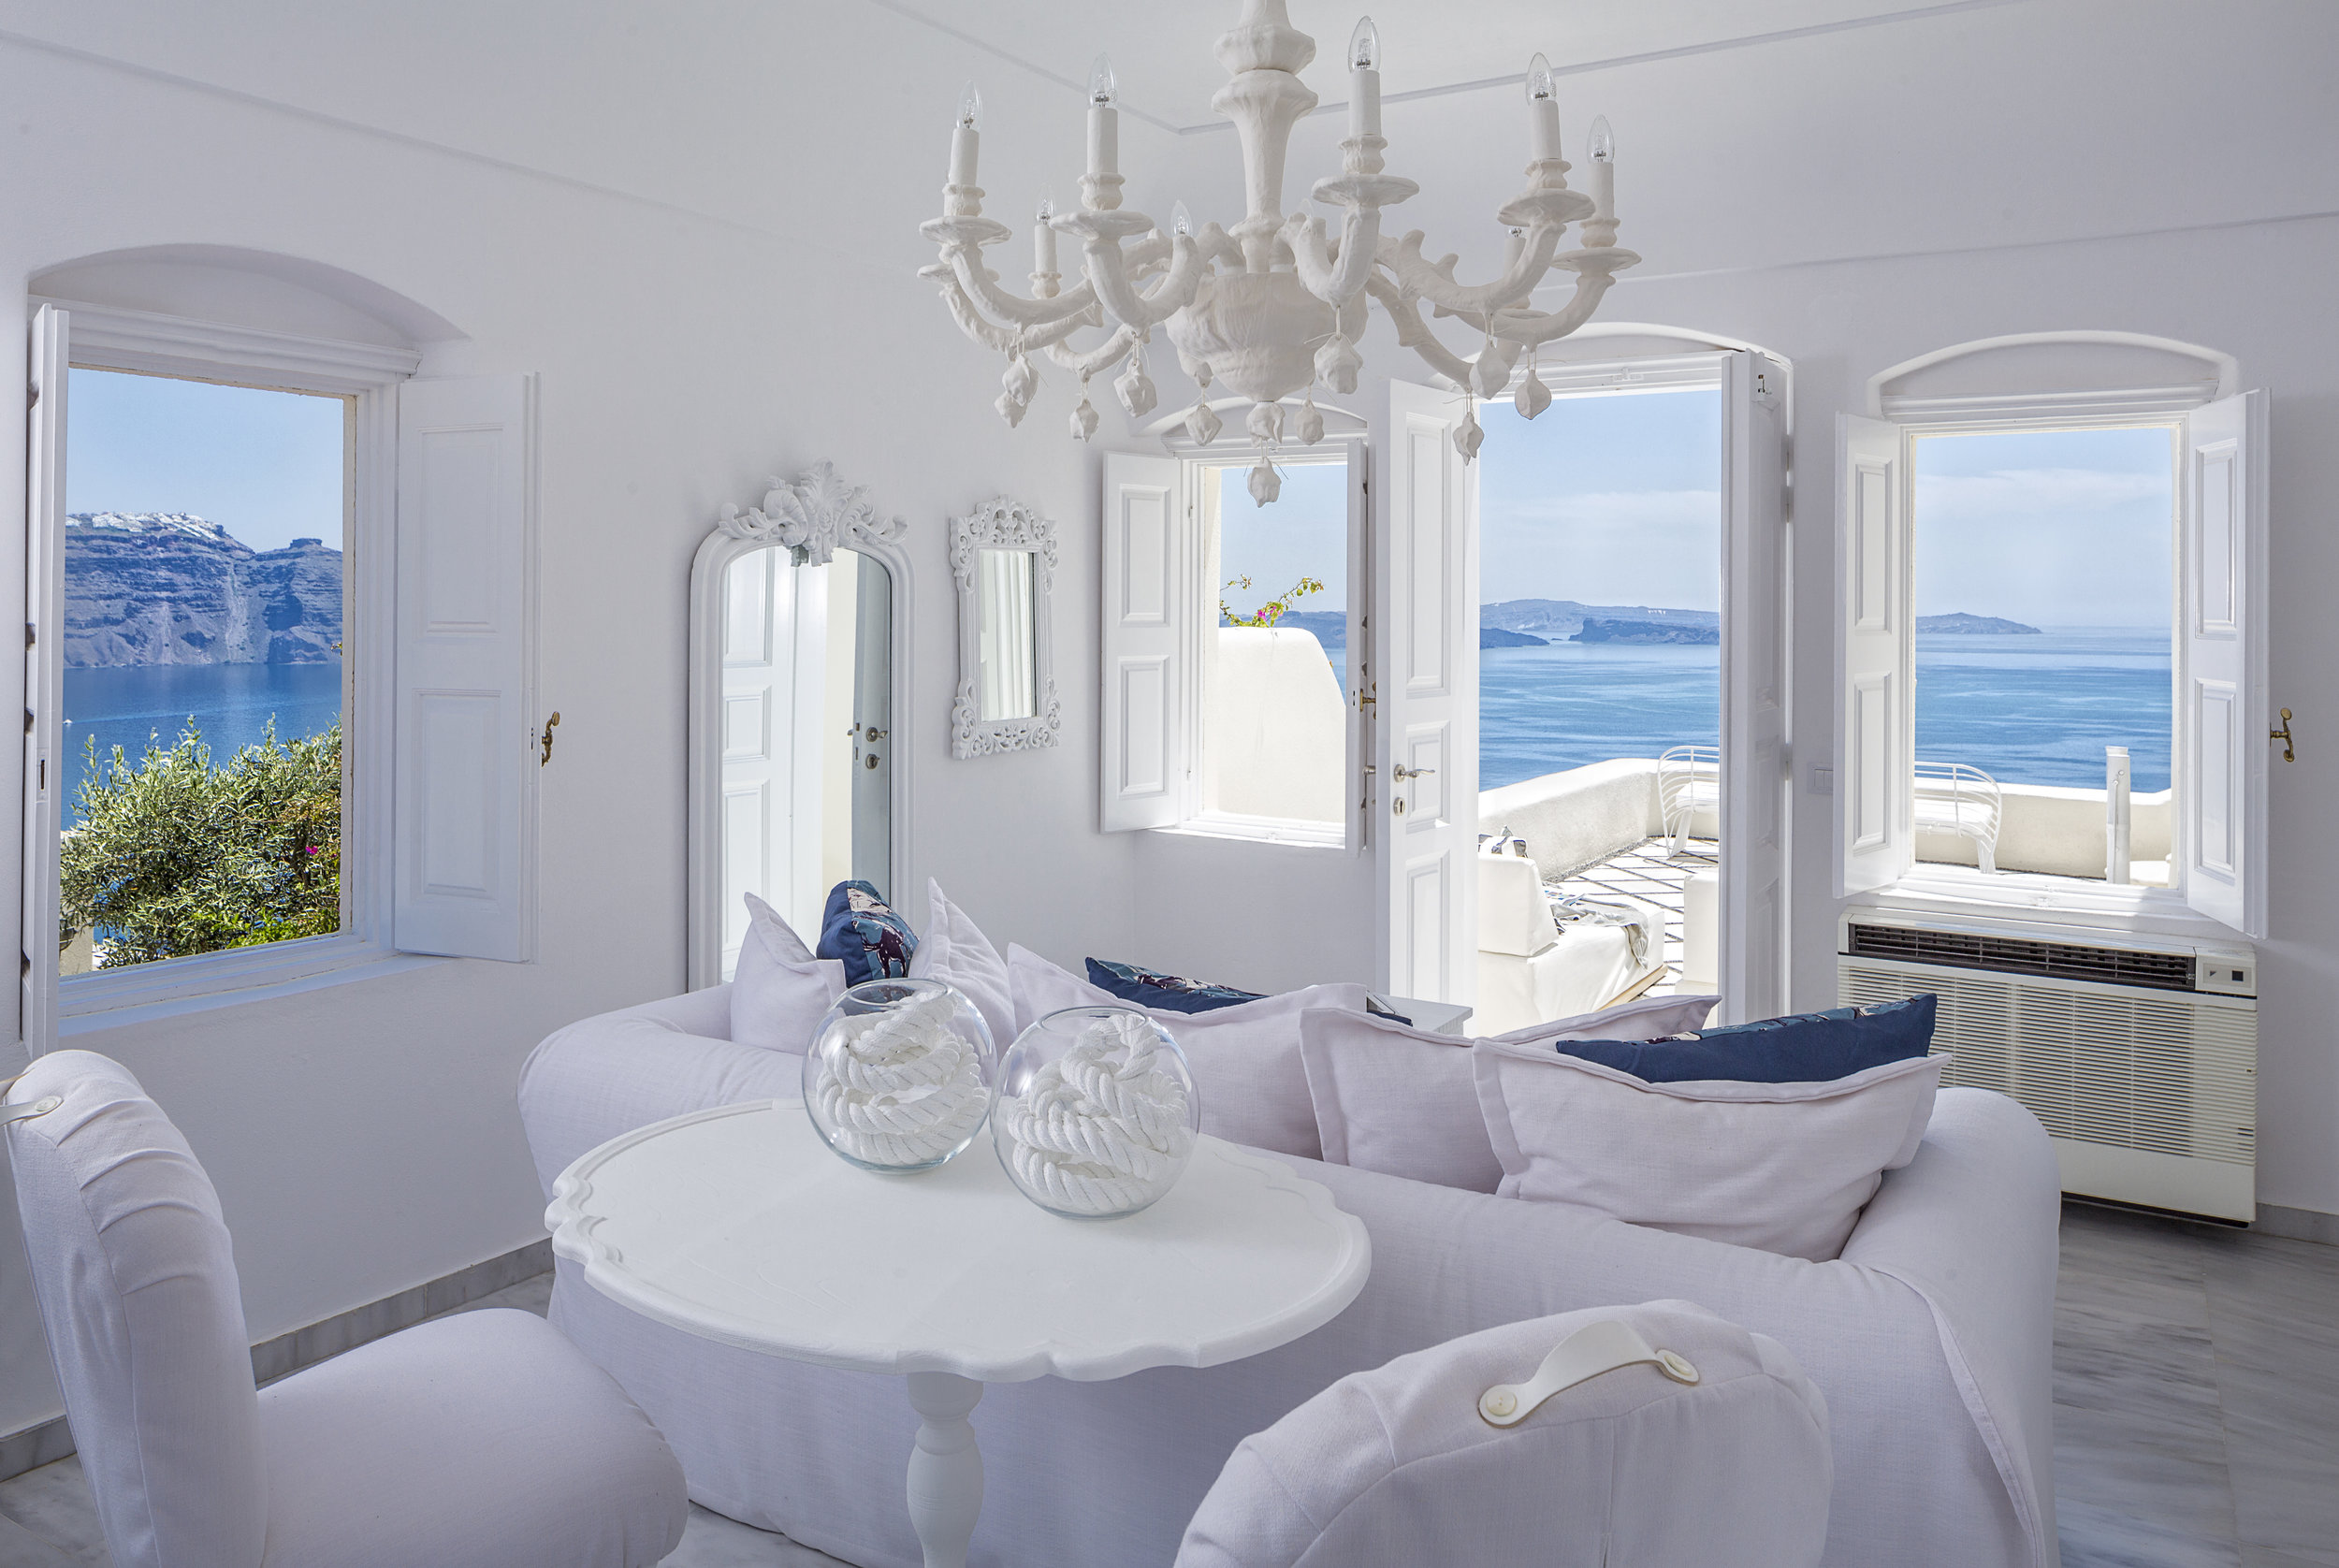 Canaves Oia Suites Renovation 2014_13.jpg